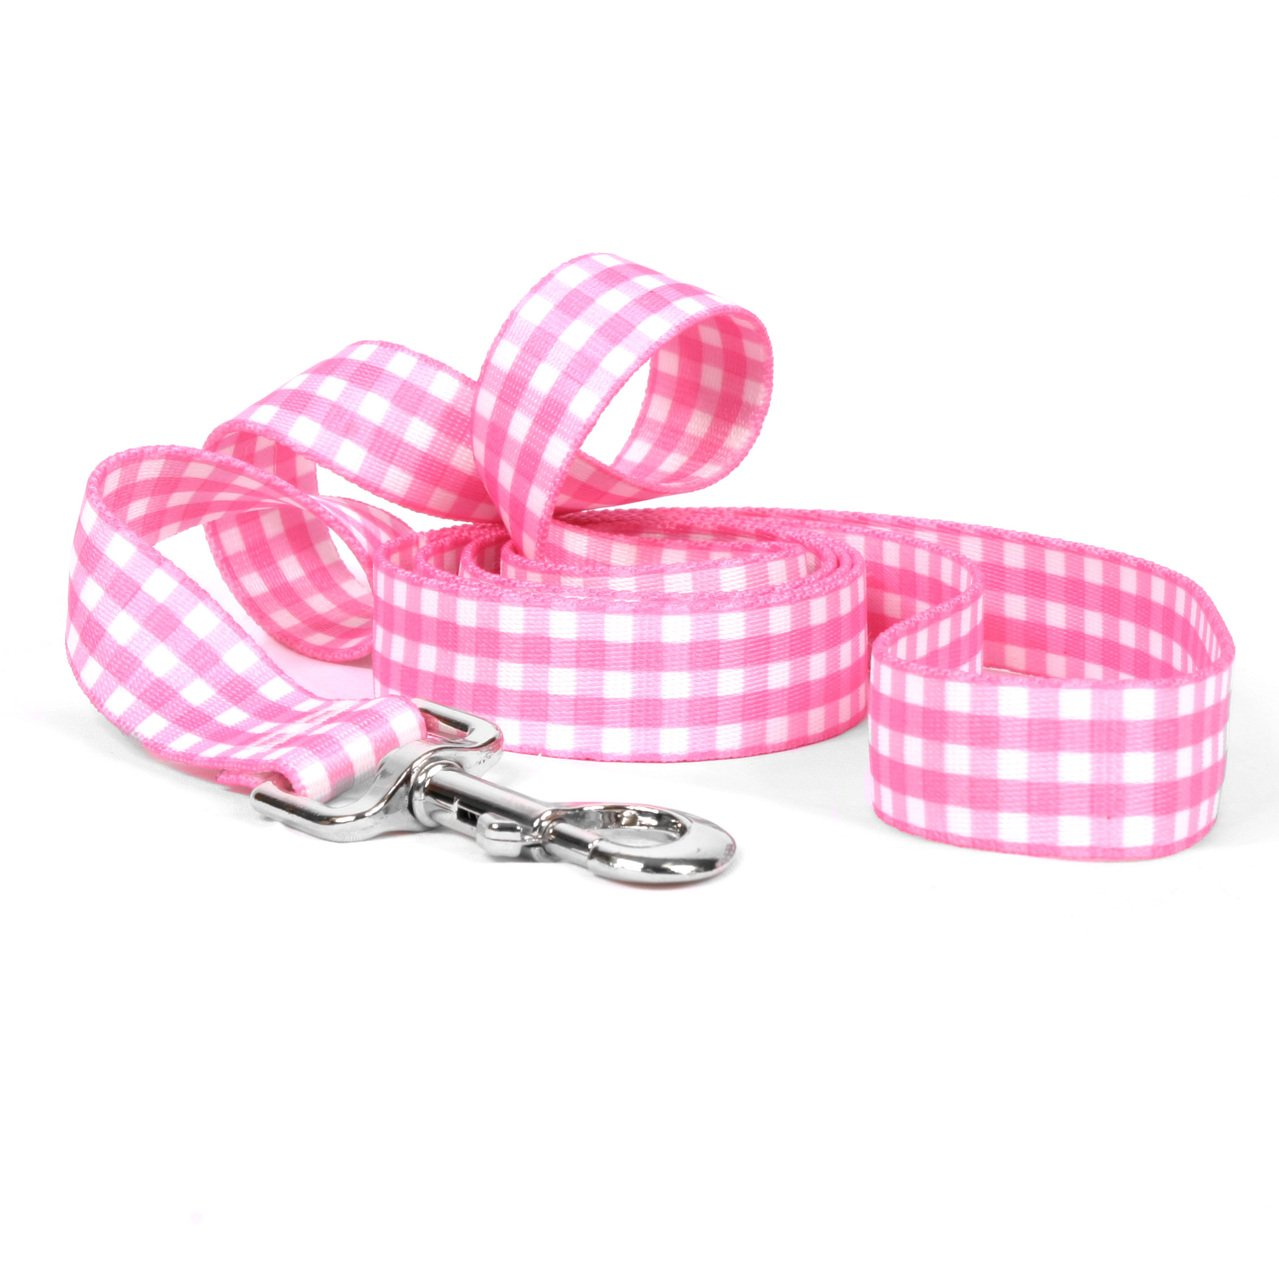 Yellow Dog Design Gingham Pink Dog Leash 3/4'' Wide And 5' (60'') Long, Small/Medium